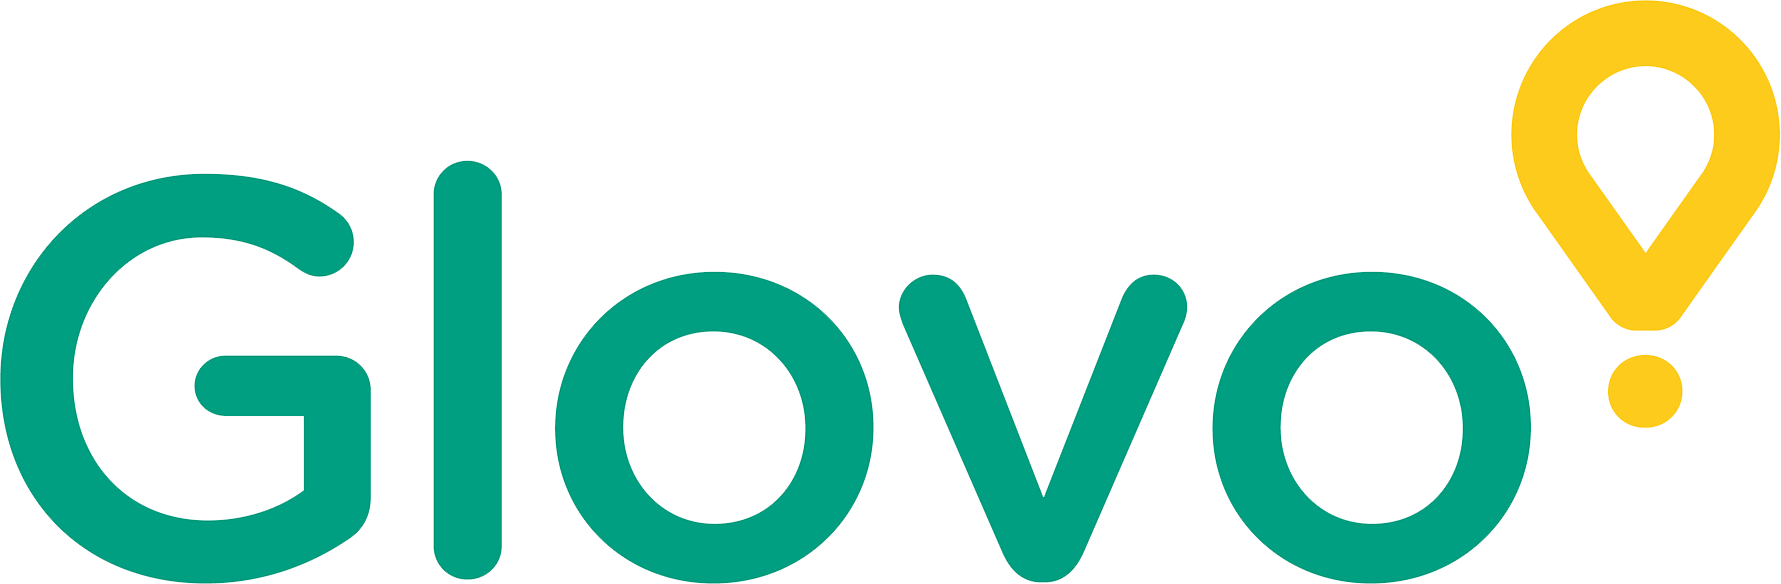 Glovo - Spanish delivery service